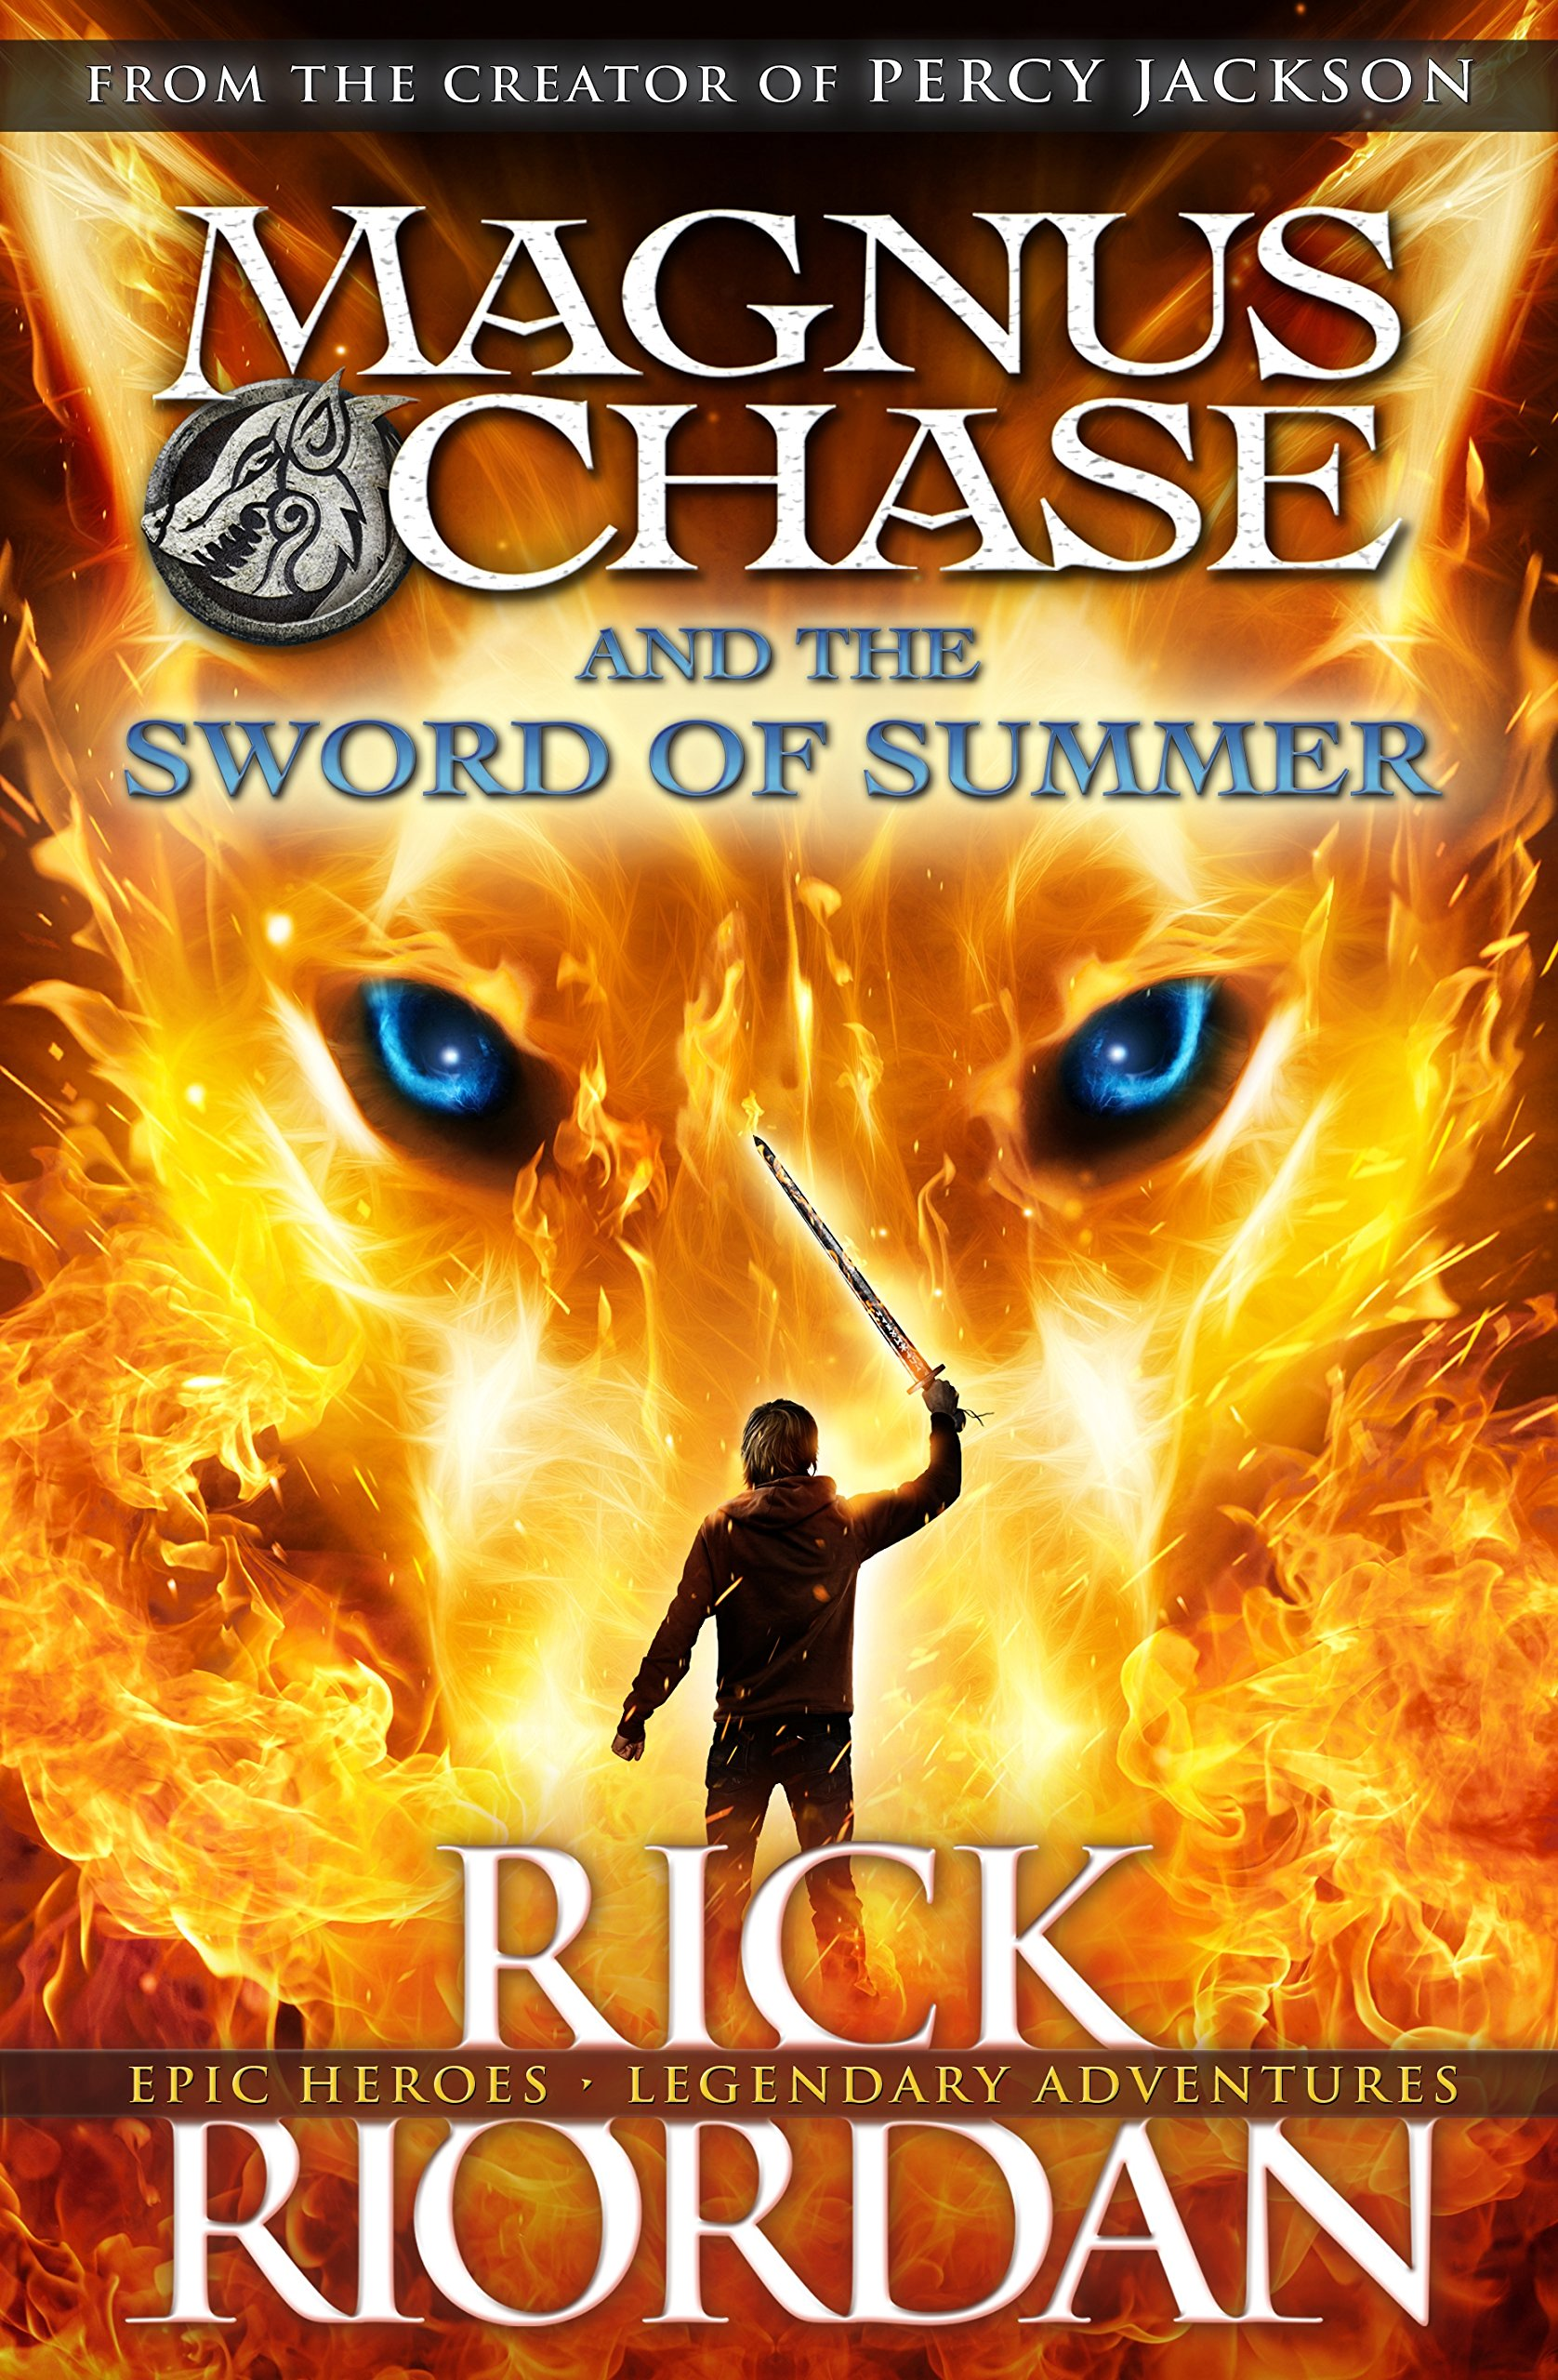 Magnus Chase And The Sword Of Summer (book 1): Amazon: Rick Riordan:  9780141342412: Books